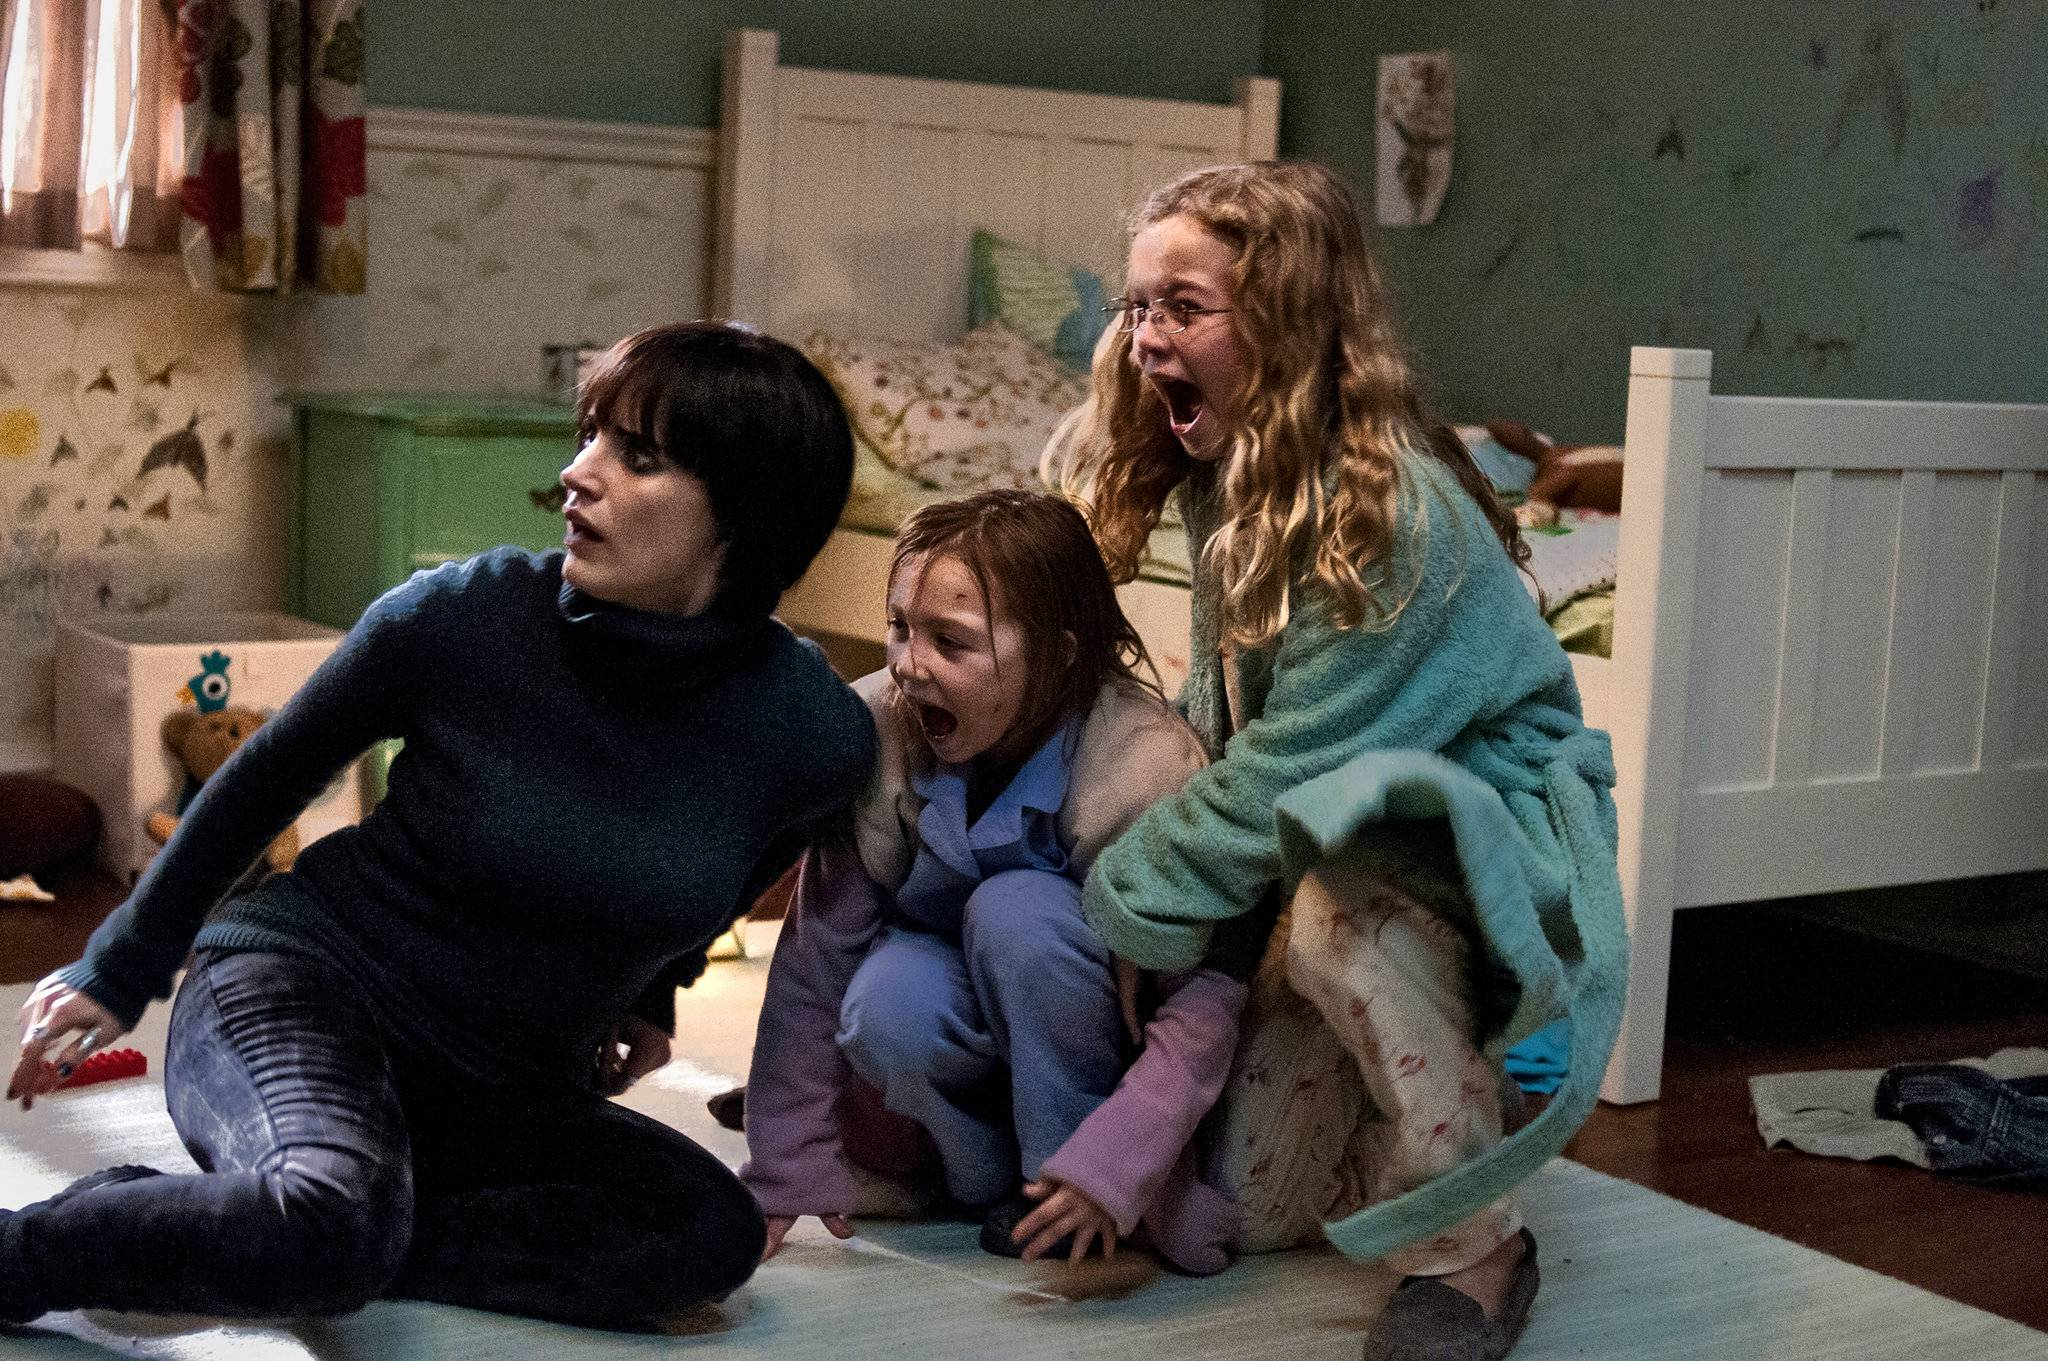 """moviereelizations.com    """"Mama"""" follows the chilling story of two little girls, lost in the woods for five years, whom only survived thanks to a creepy, twisted entity known to the girls as """"Mama."""" When the girls are recovered and sent to their uncle to live, the ghost follows with them, determined not to lose her """"children""""by any cost--even if that means destroyingtheir new parents."""